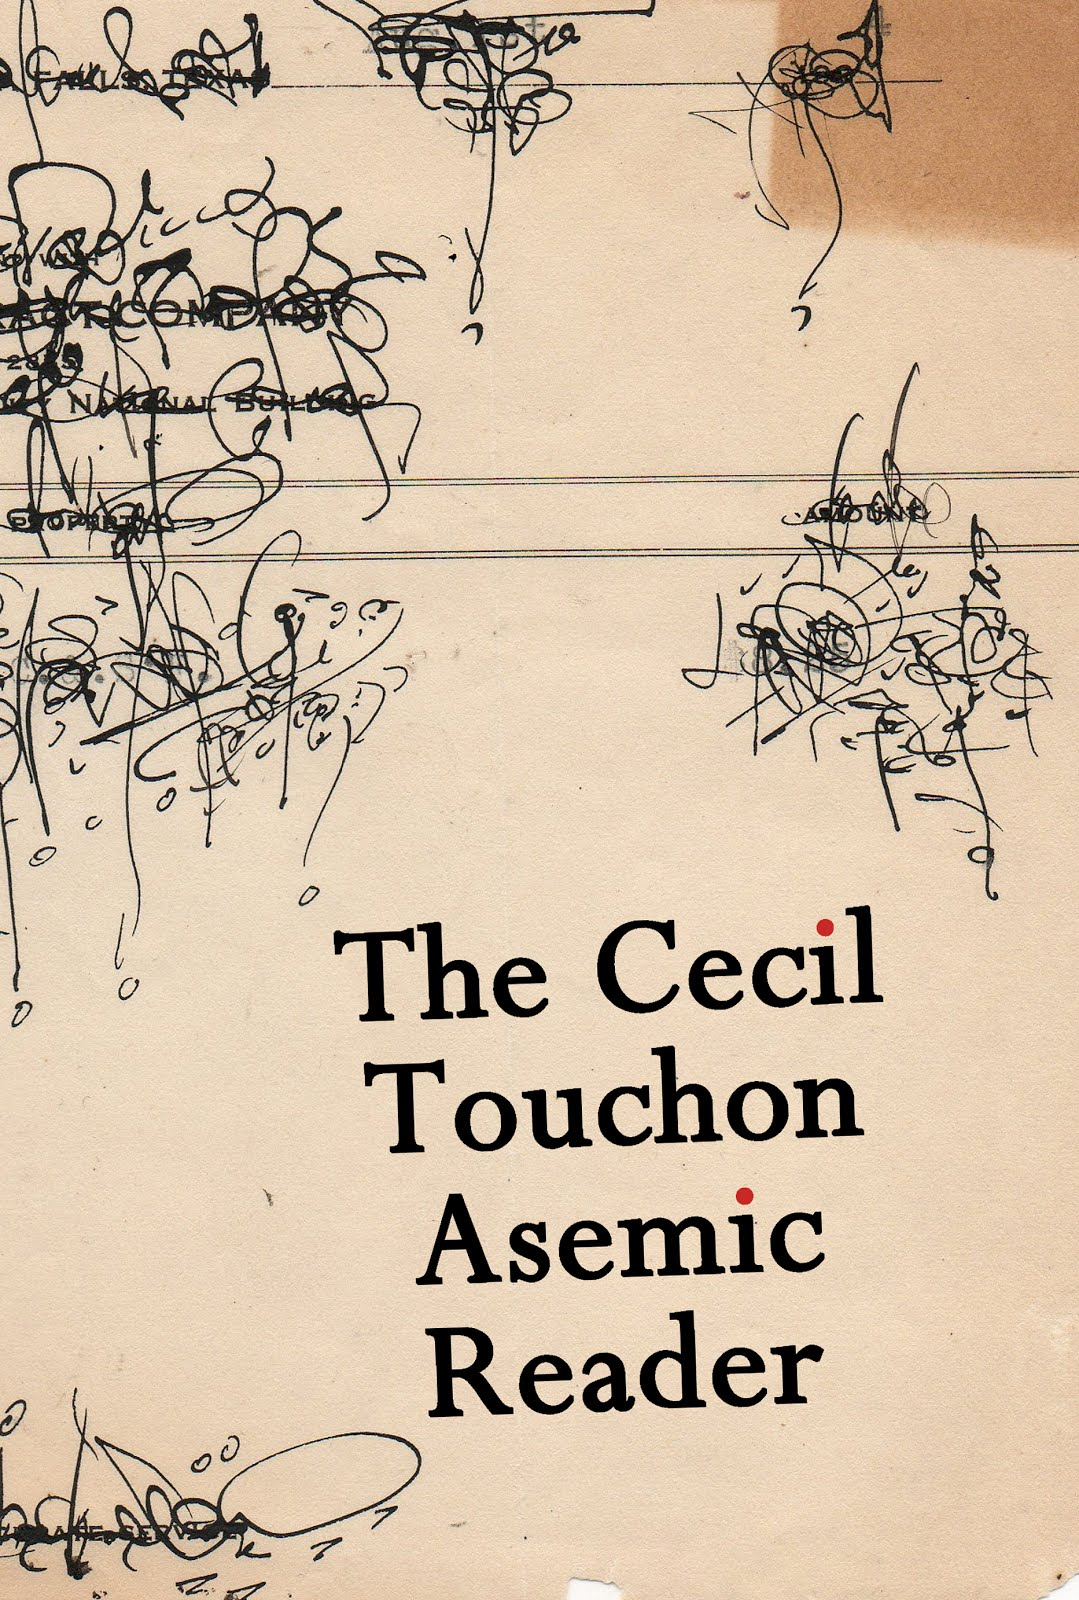 Coming Soon in Summer 2019! The Cecil Touchon Asemic Reader